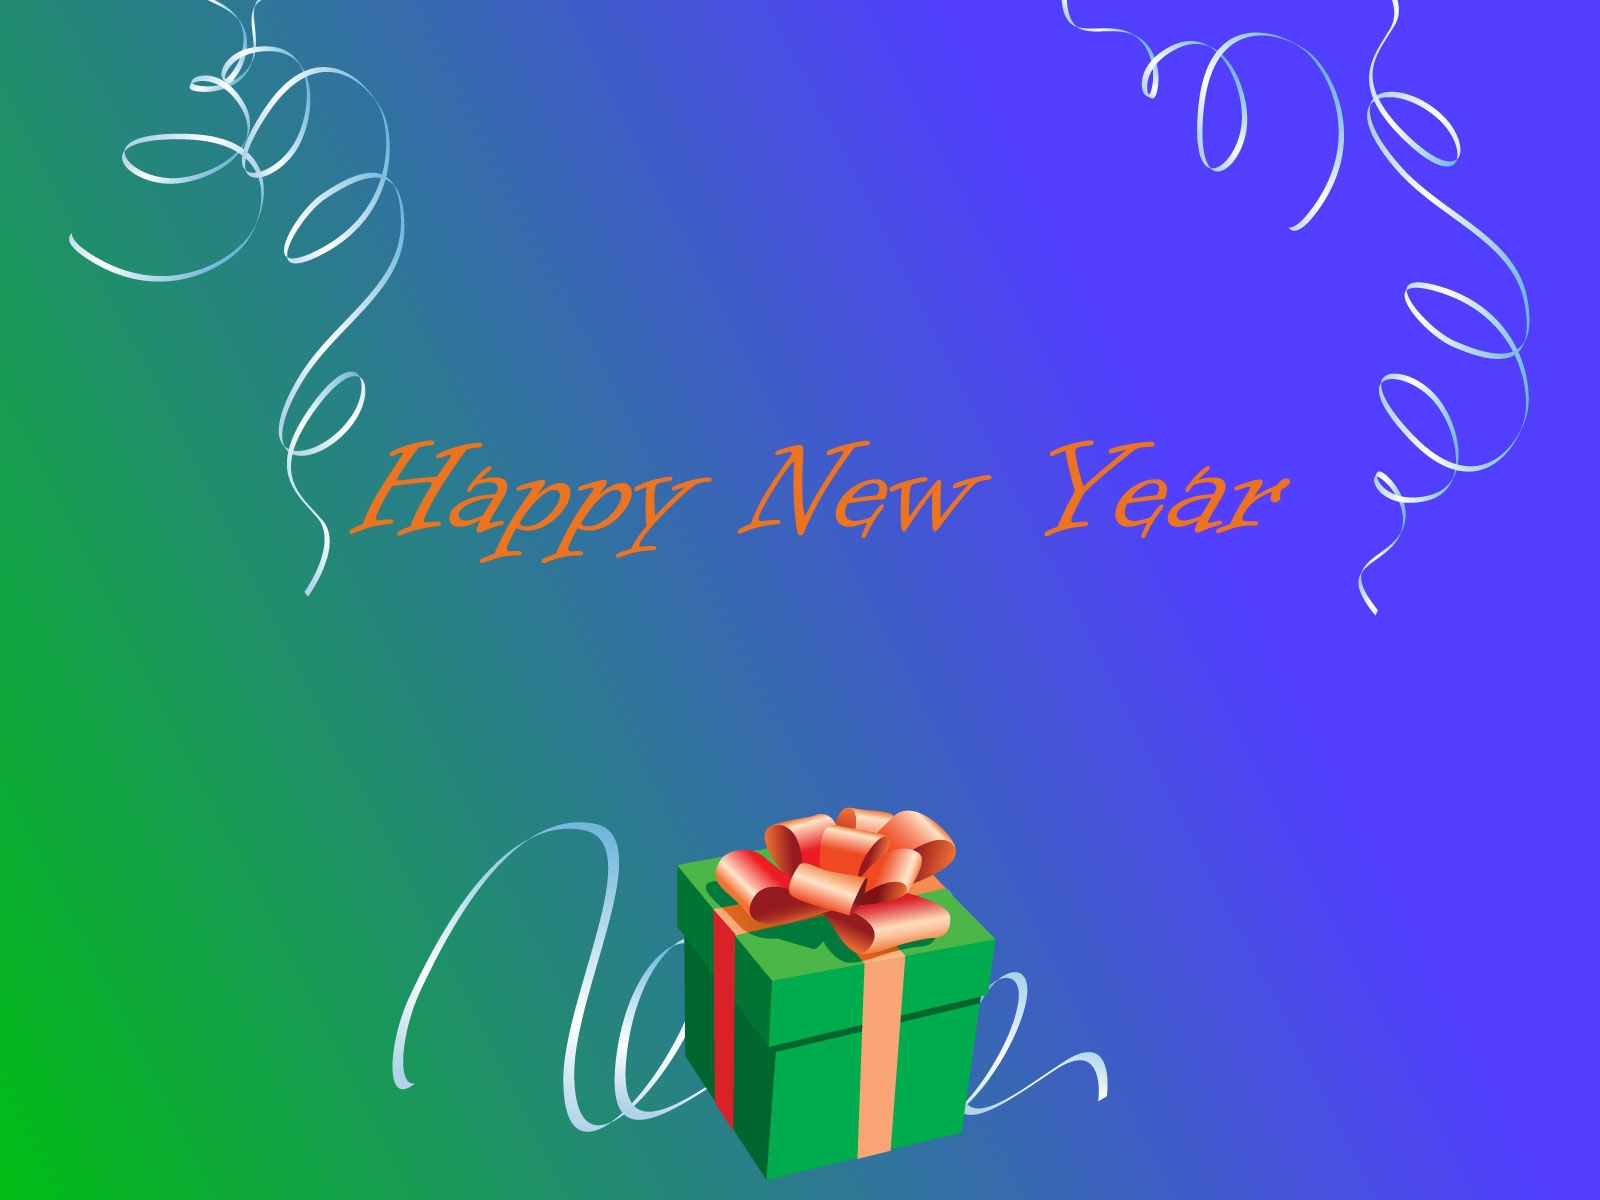 wallpaper proslut: Most Beautiful Happy New Year Wishes ...